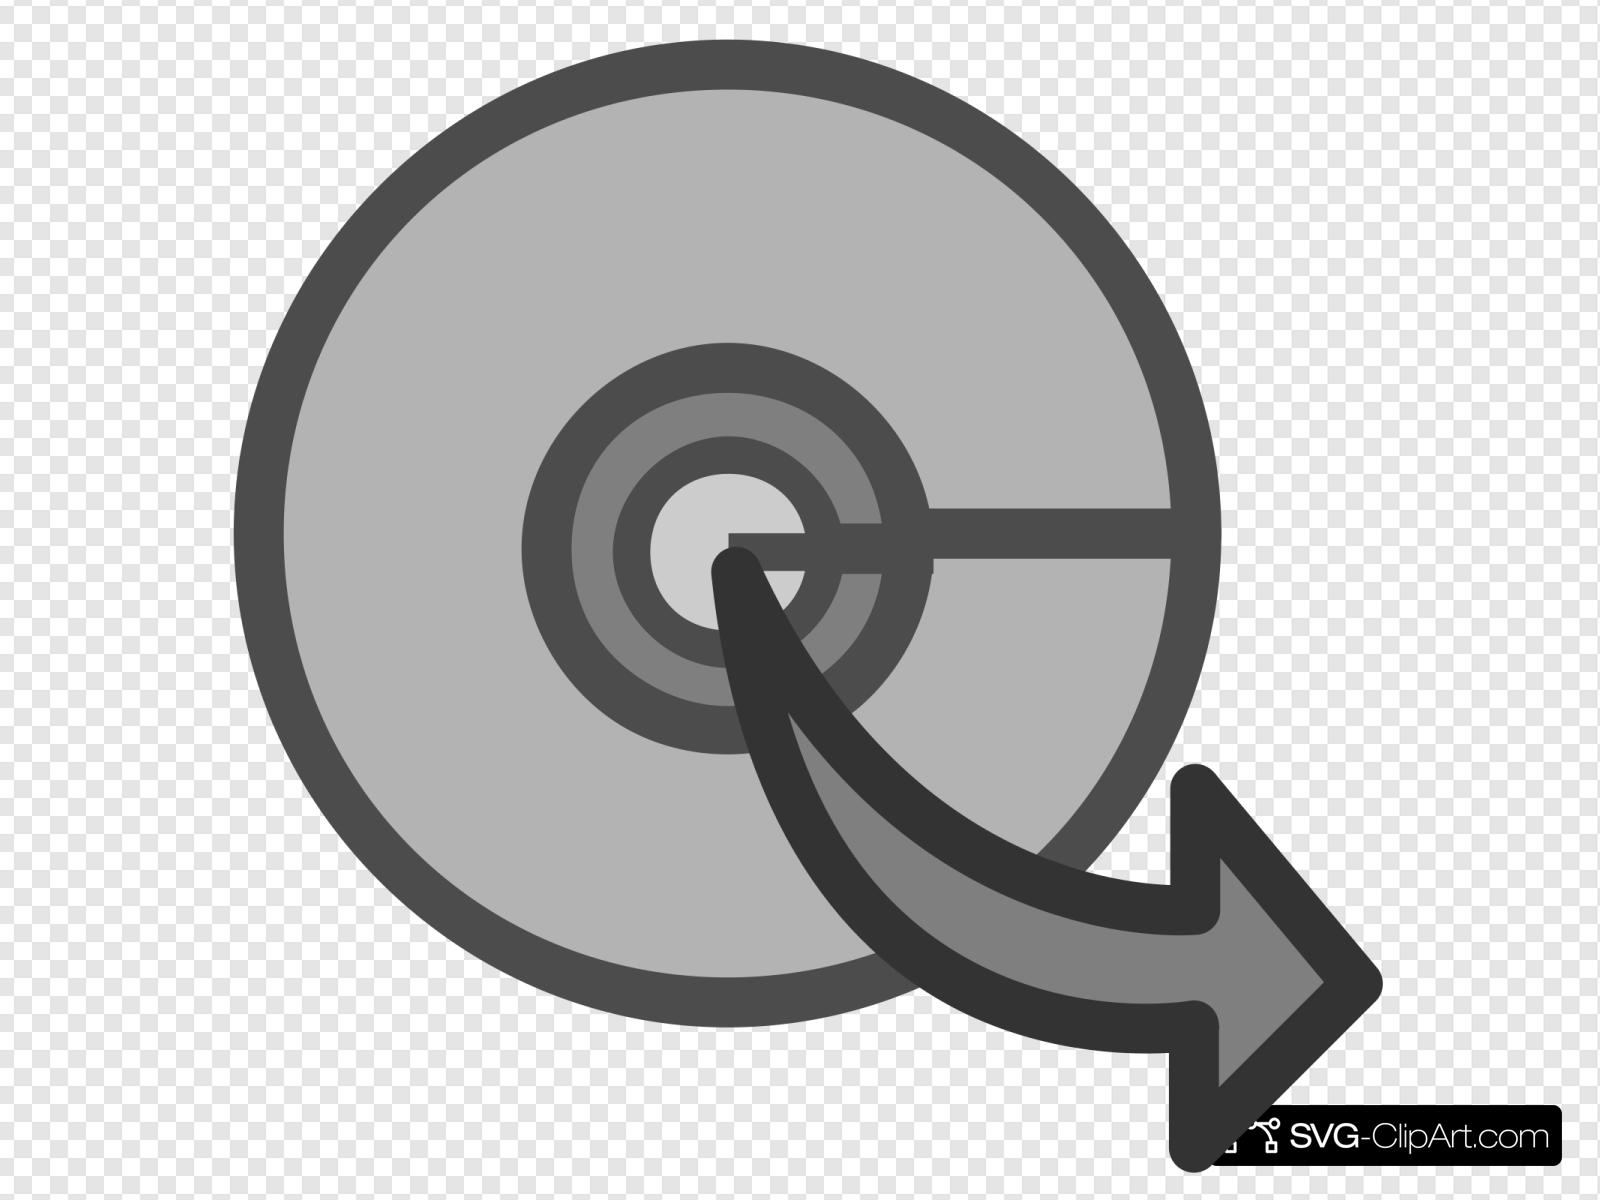 Audio cd clipart royalty free download Audio Cd Creator Clip art, Icon and SVG - SVG Clipart royalty free download